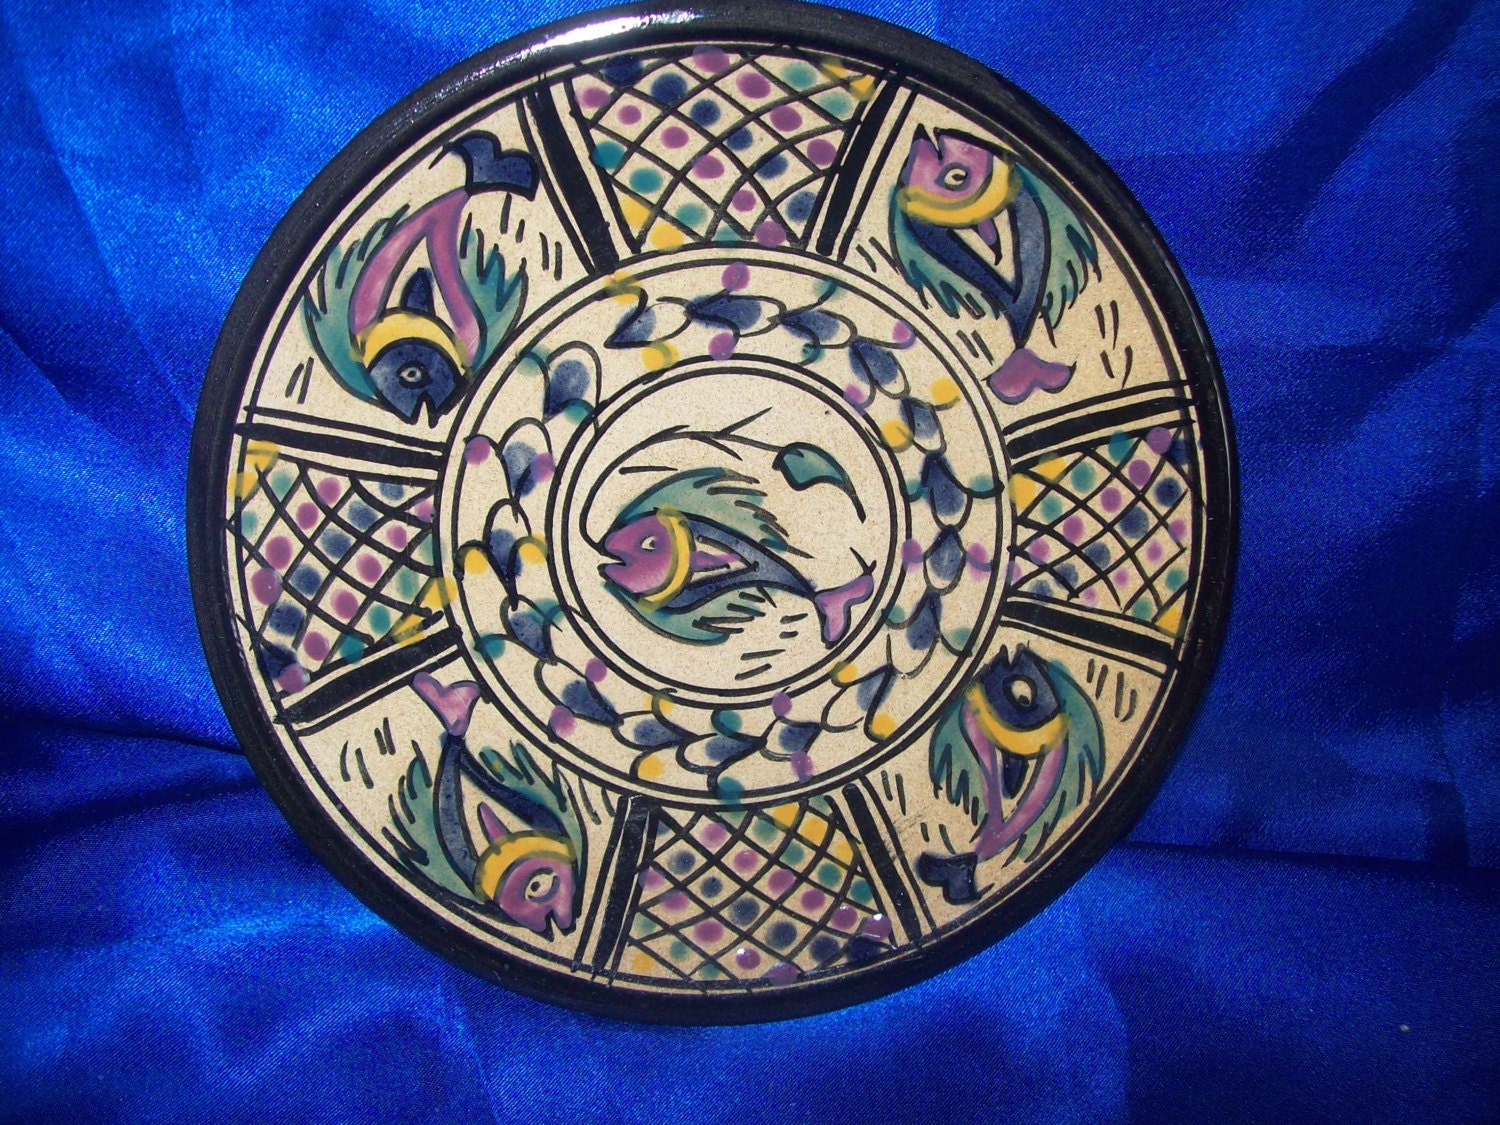 Handdecorated Earthenware Plate Fish Design made in Tunisia